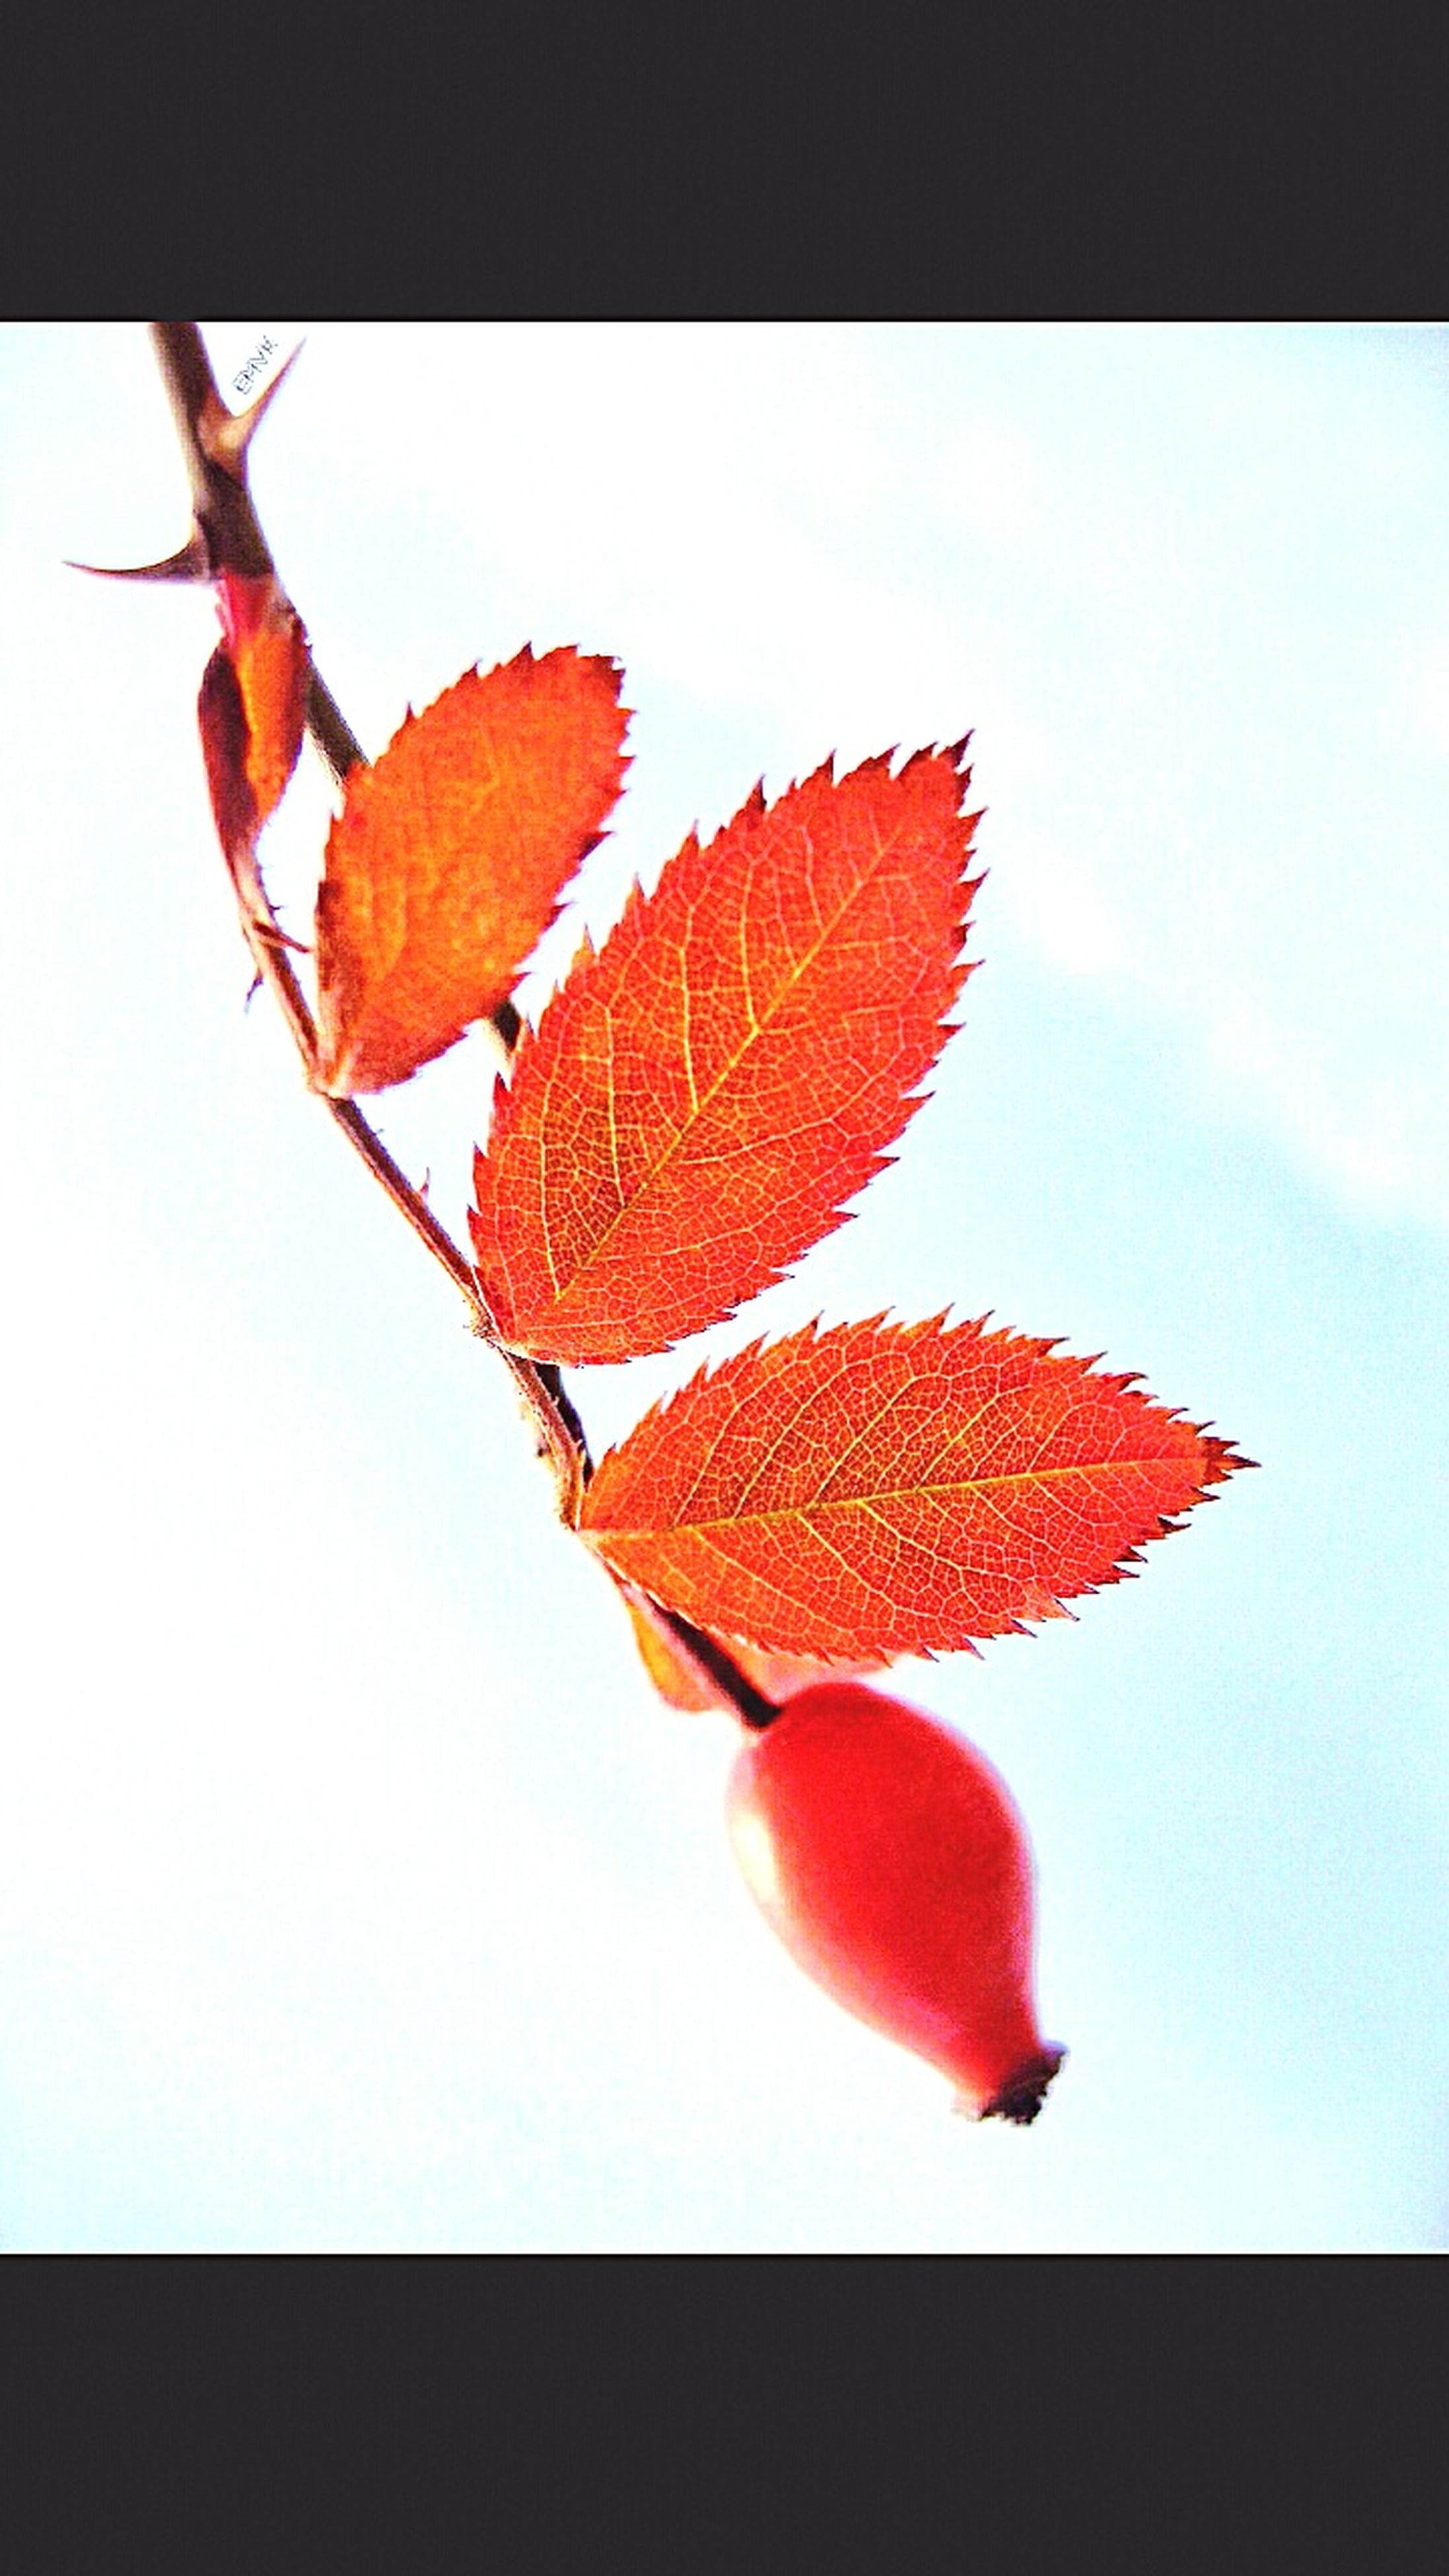 change, leaf, autumn, red, season, close-up, natural condition, studio shot, white background, leaf vein, leaves, nature, orange color, branch, beauty in nature, tranquility, day, fragility, no people, creativity